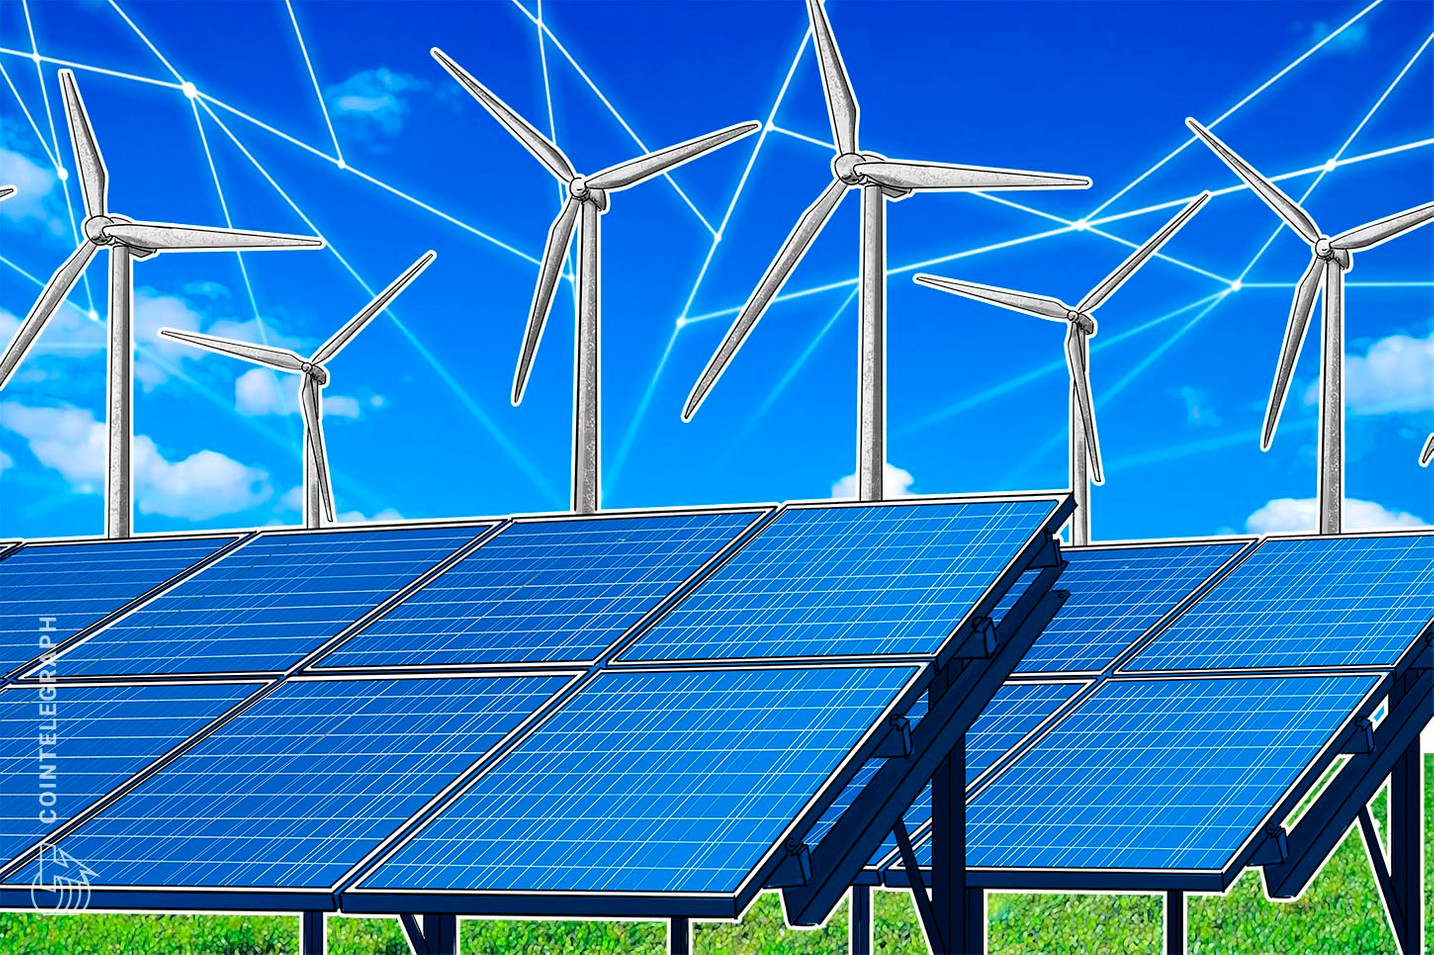 Solar Power Supplier Kyocera Teams up With Blockchain Firm to Improve Energy Distribution